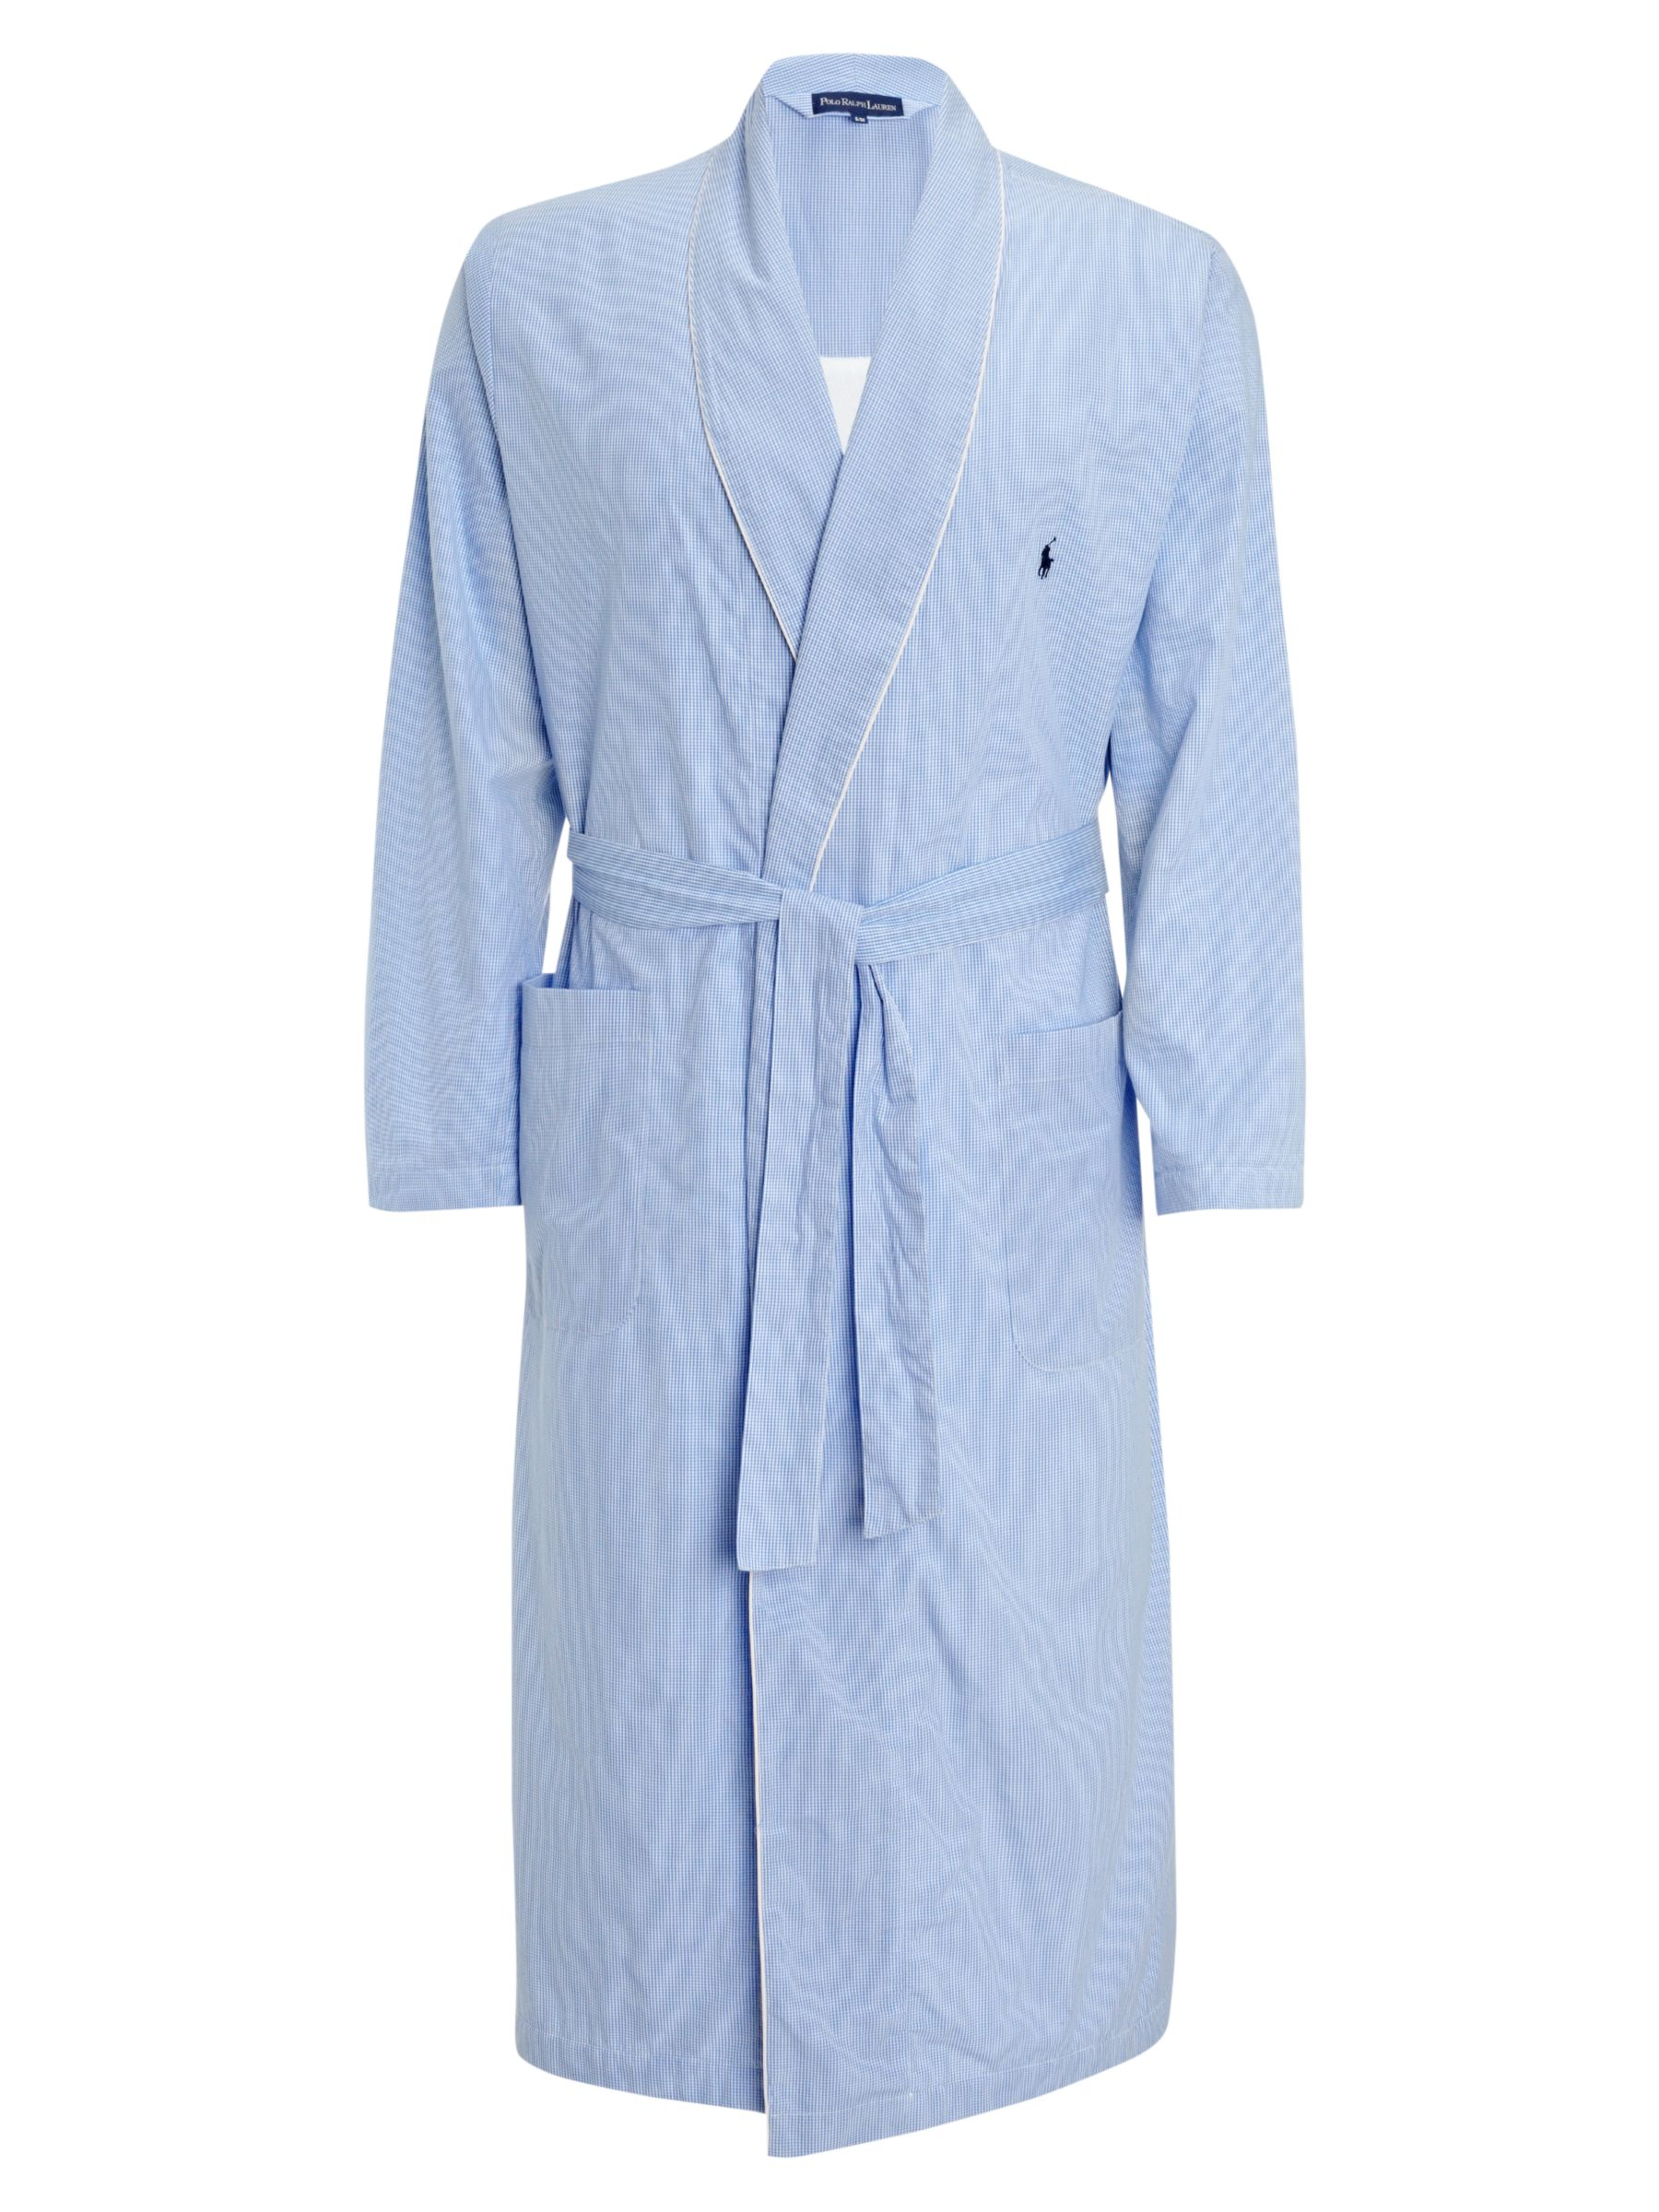 Polo Ralph Lauren Gingham Cotton Bath Robe